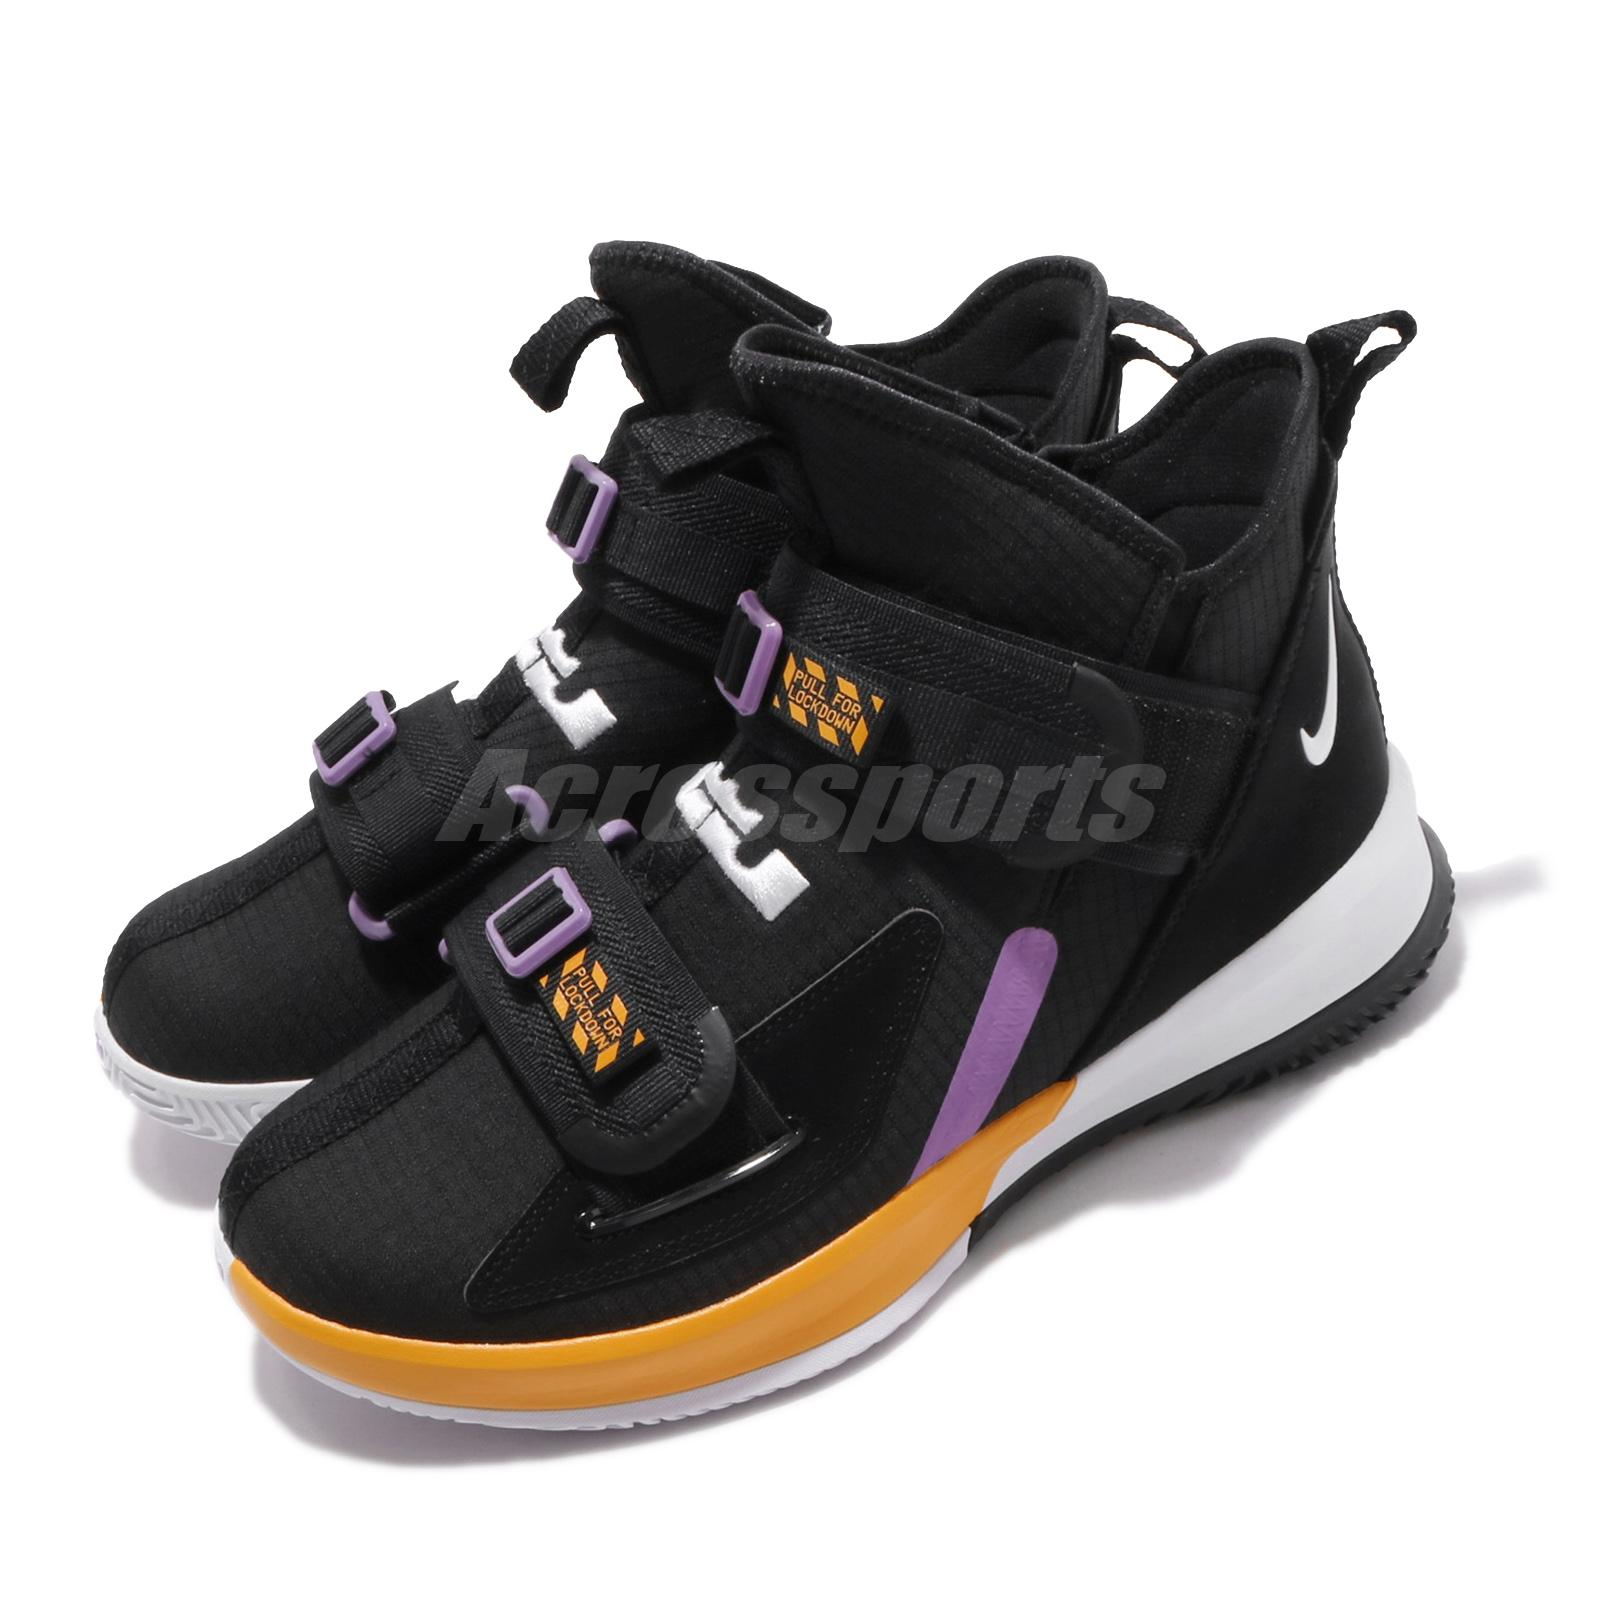 more photos 5999a ab692 Details about Nike LeBron Soldier XIII SFG EP 13 James Black Yellow White  Men Shoes AR4228-004